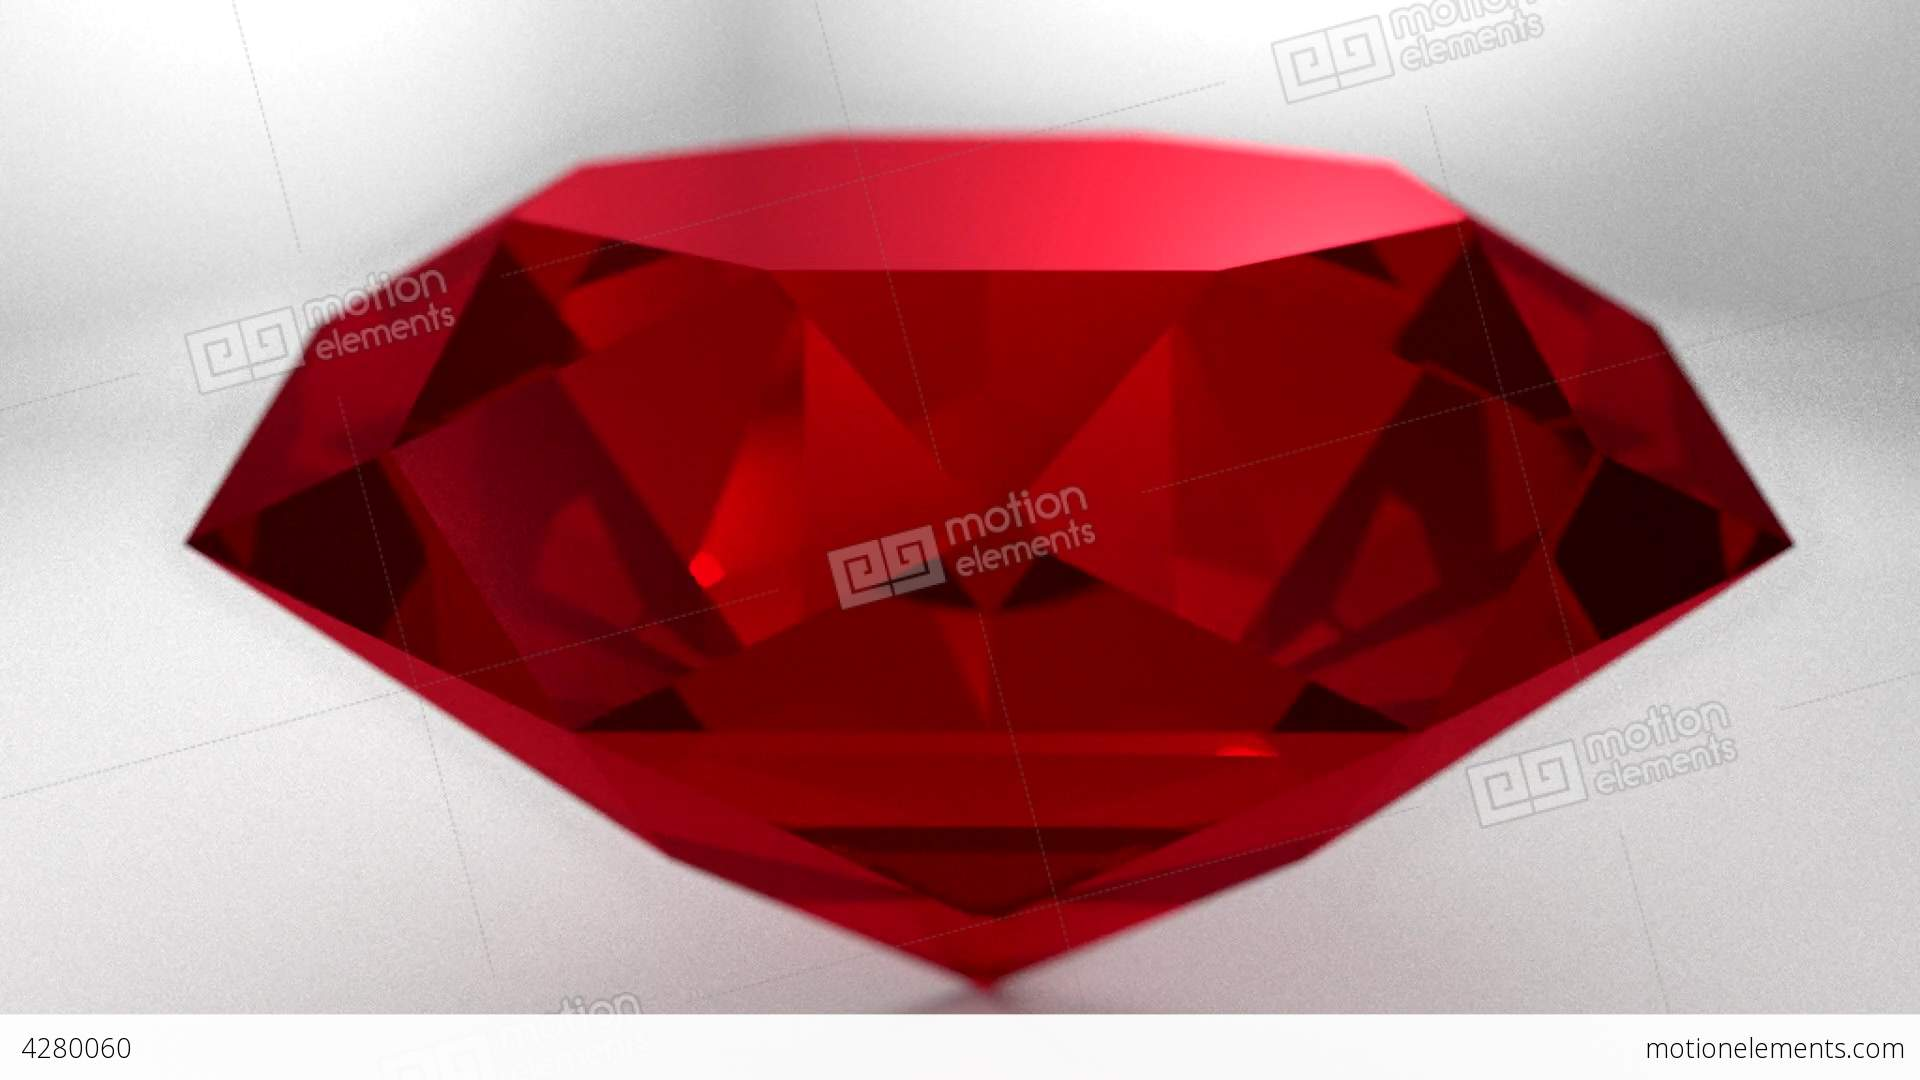 jewelryonclick prices natural oval dp carat gemstone manik amazon ruby certified original loose at low buy india online stone in jewellery ratti manak